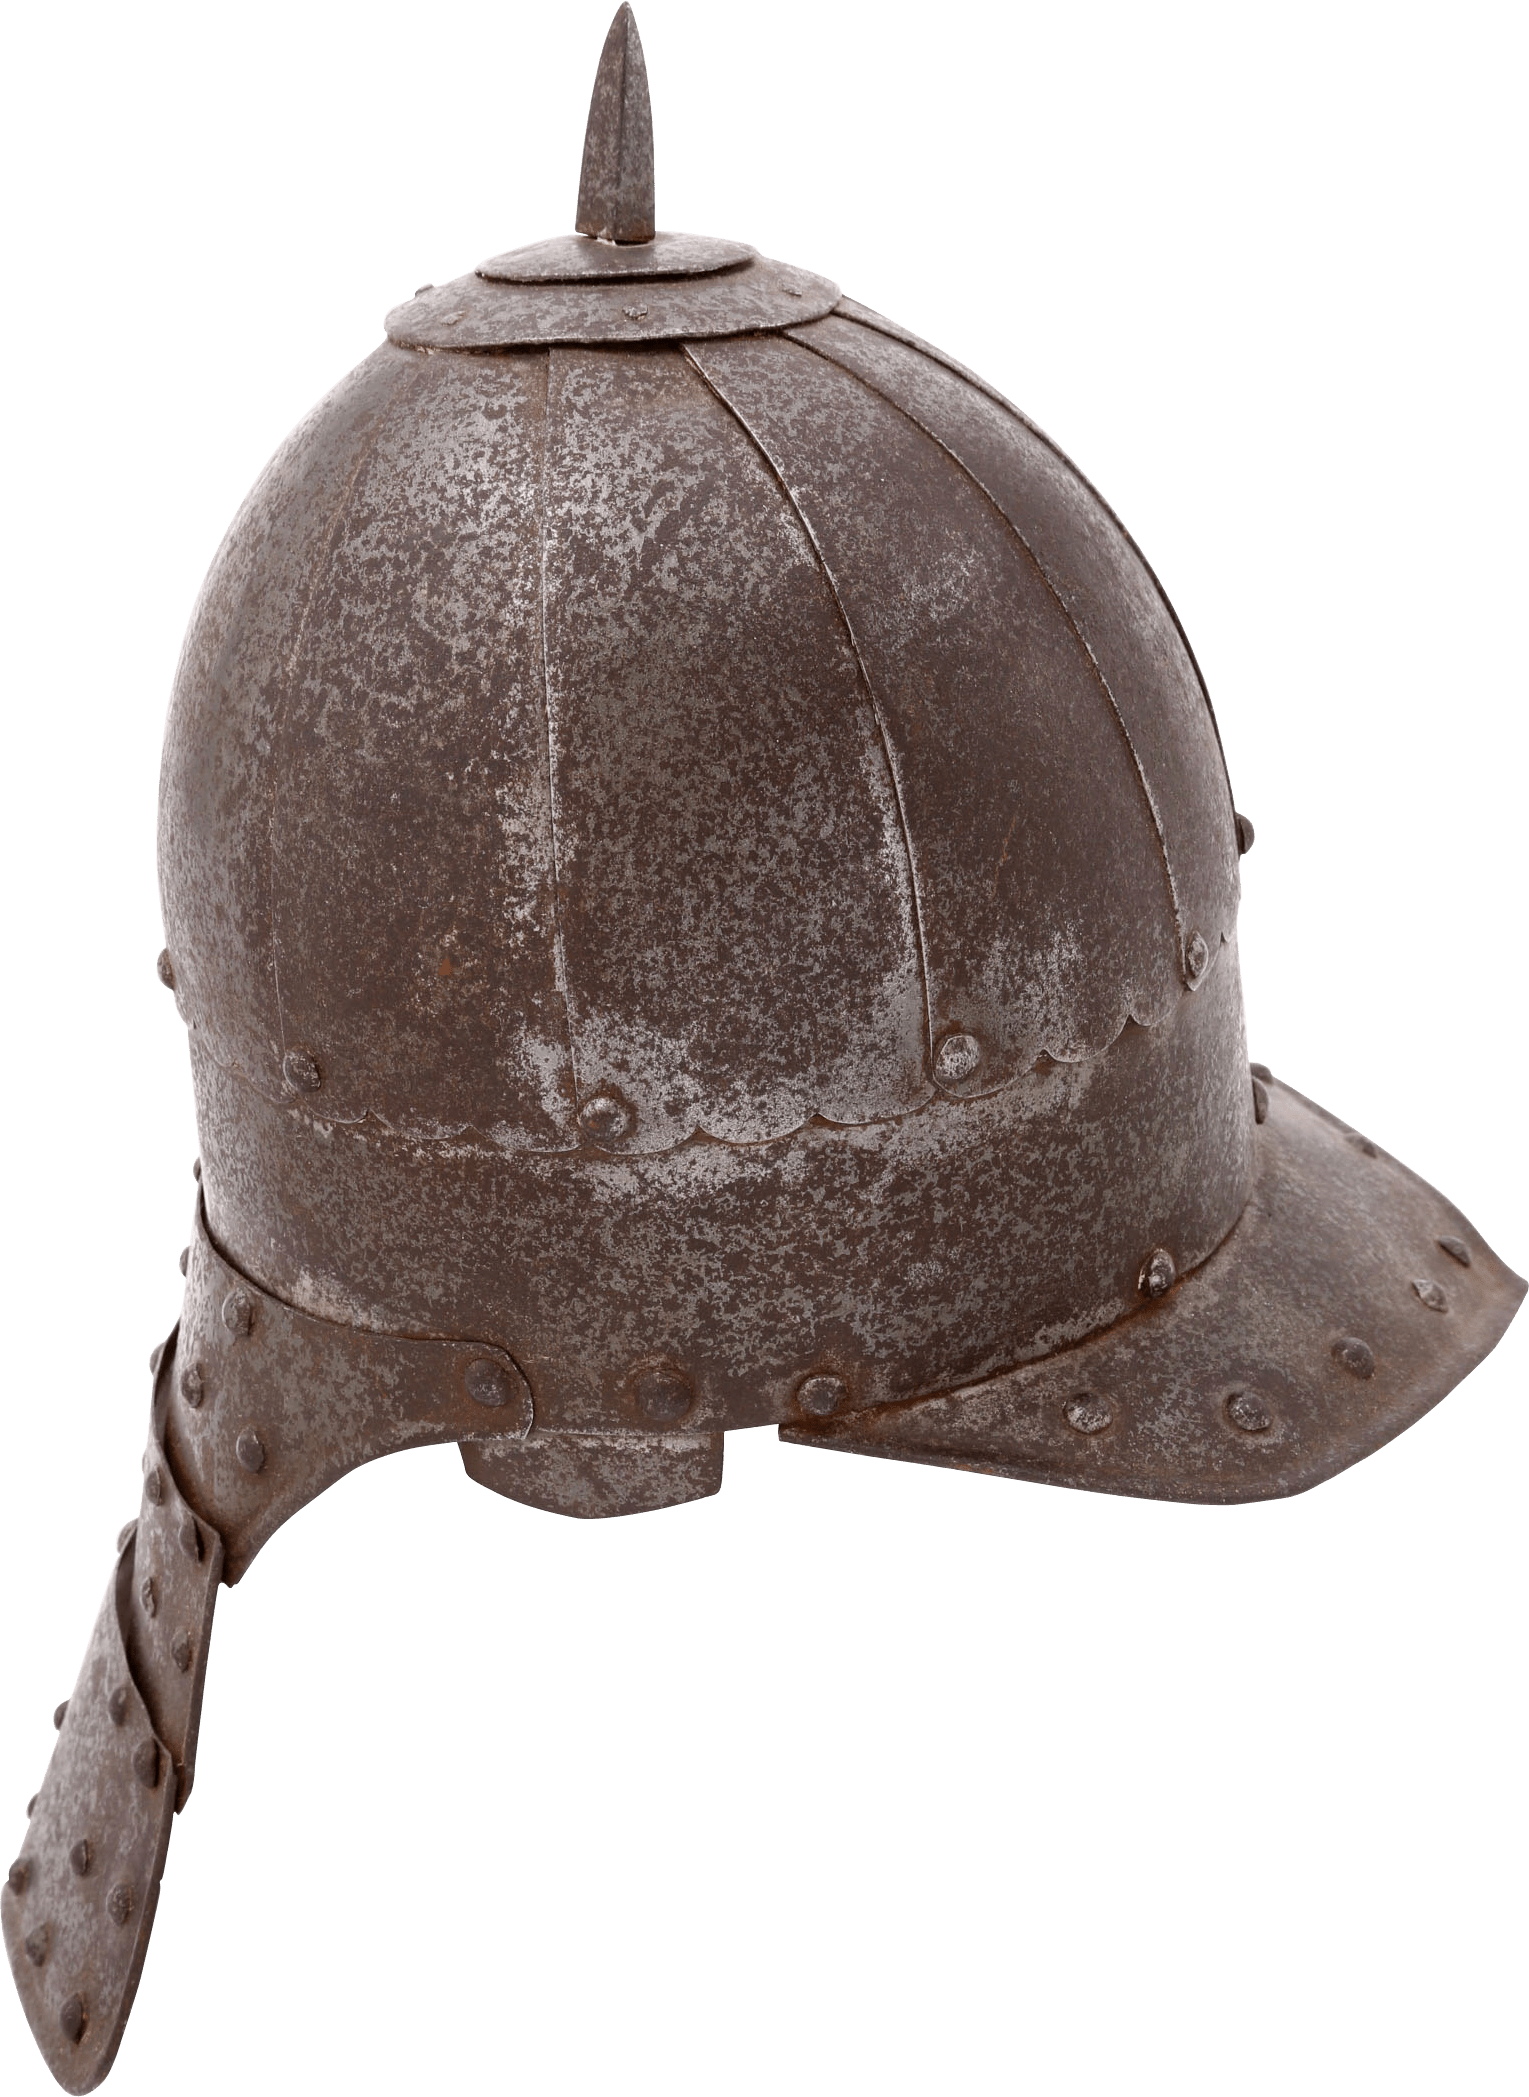 POLISH CAVALRY HELMET, ZISCHAGGE, LATE 17th CENTURY - Fagan Arms